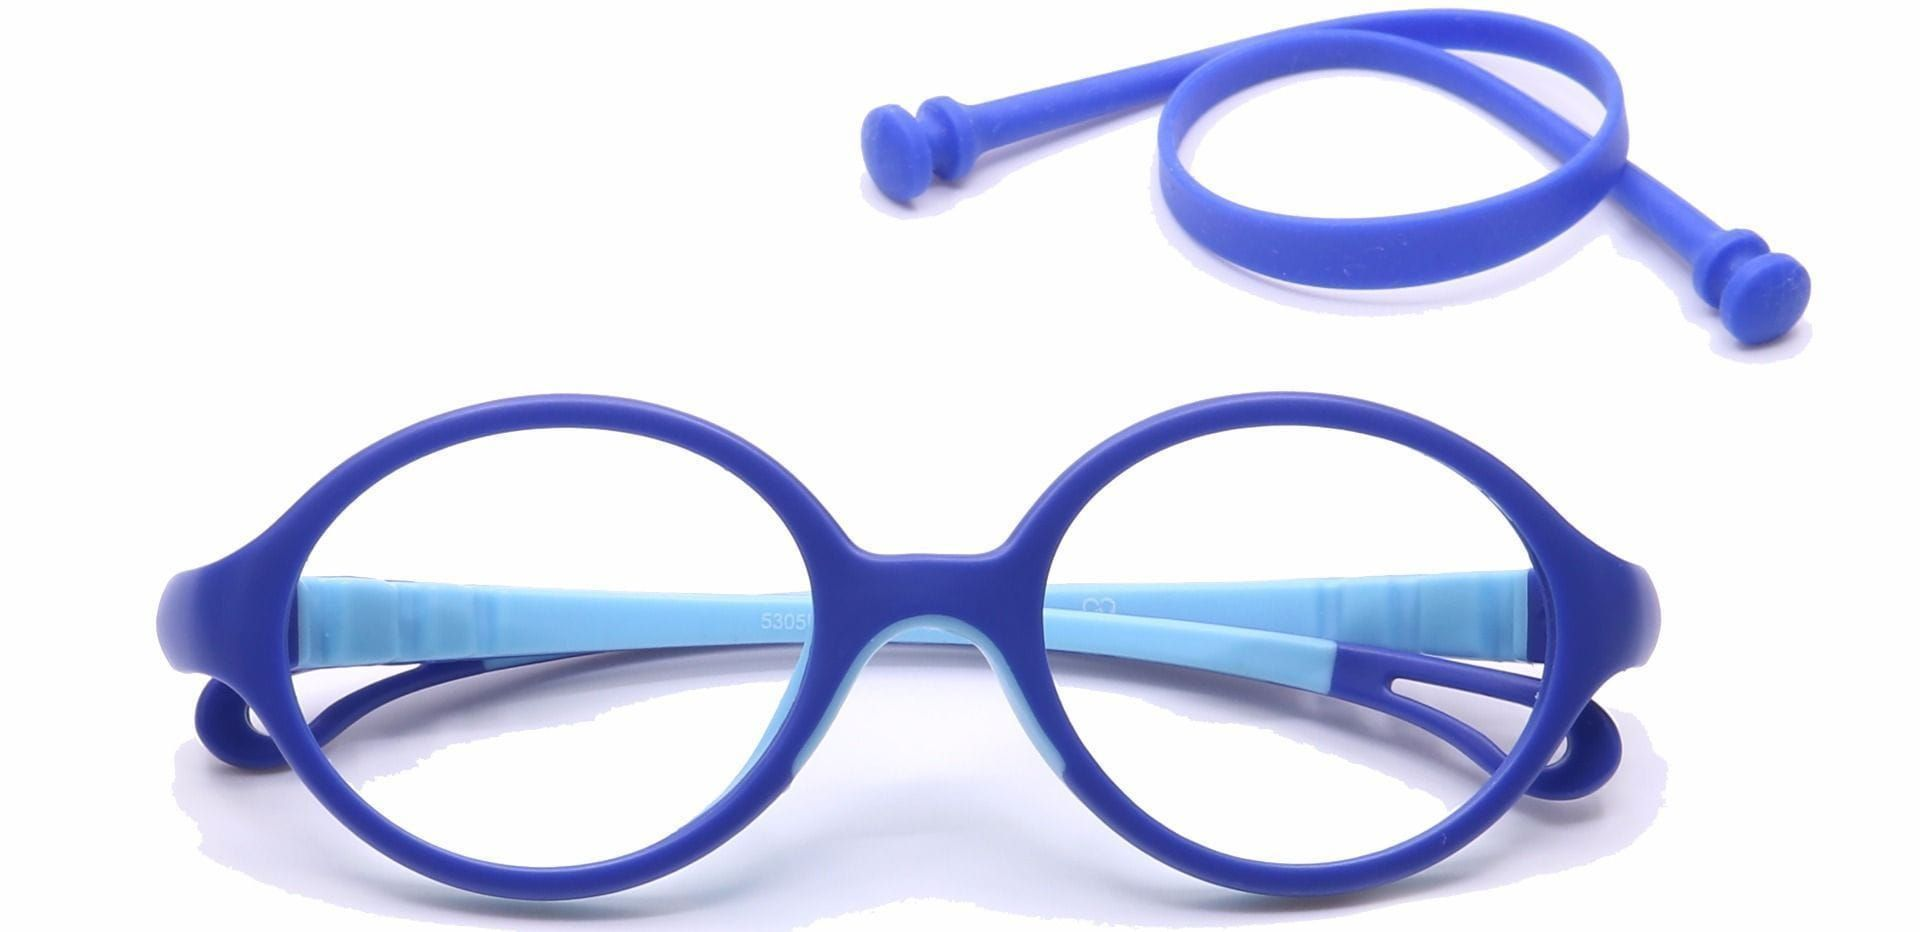 Whimsy Oval Reading Glasses - Blue/aqua